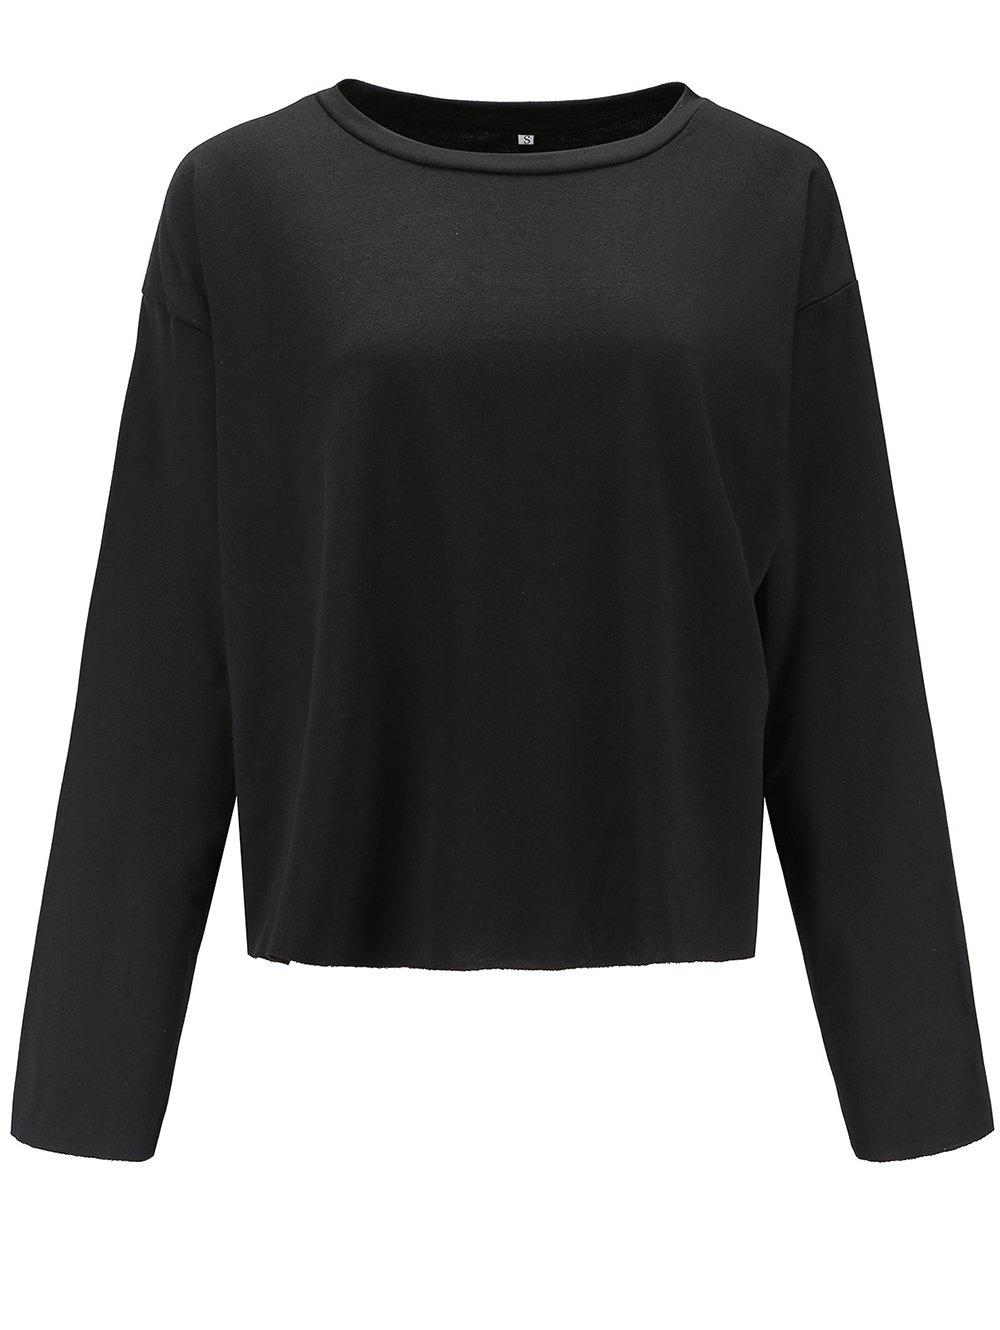 Fancy Womens Casual Round Neck  Sweatshirt  Long Sleeve Pullover Tops